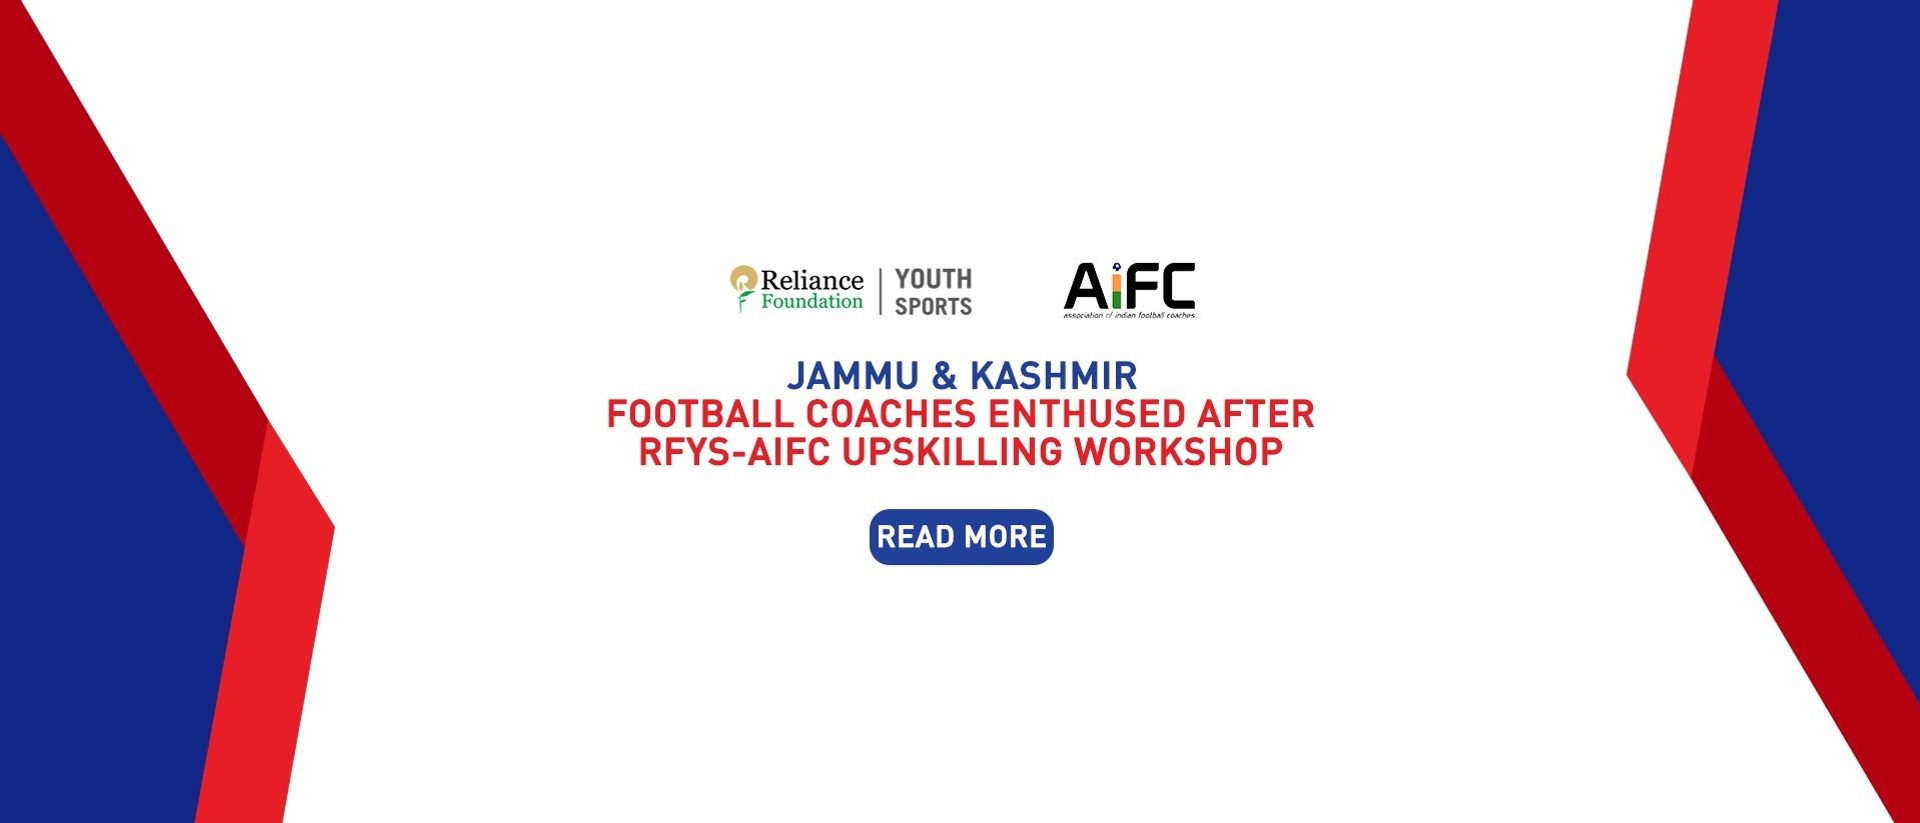 """""""WILL IMPLEMENT LEARNINGS IN DISTRICTS"""" – J&K FOOTBALL COACHES ENTHUSED AFTER RFYS-AIFC UPSKILLING WORKSHOP"""